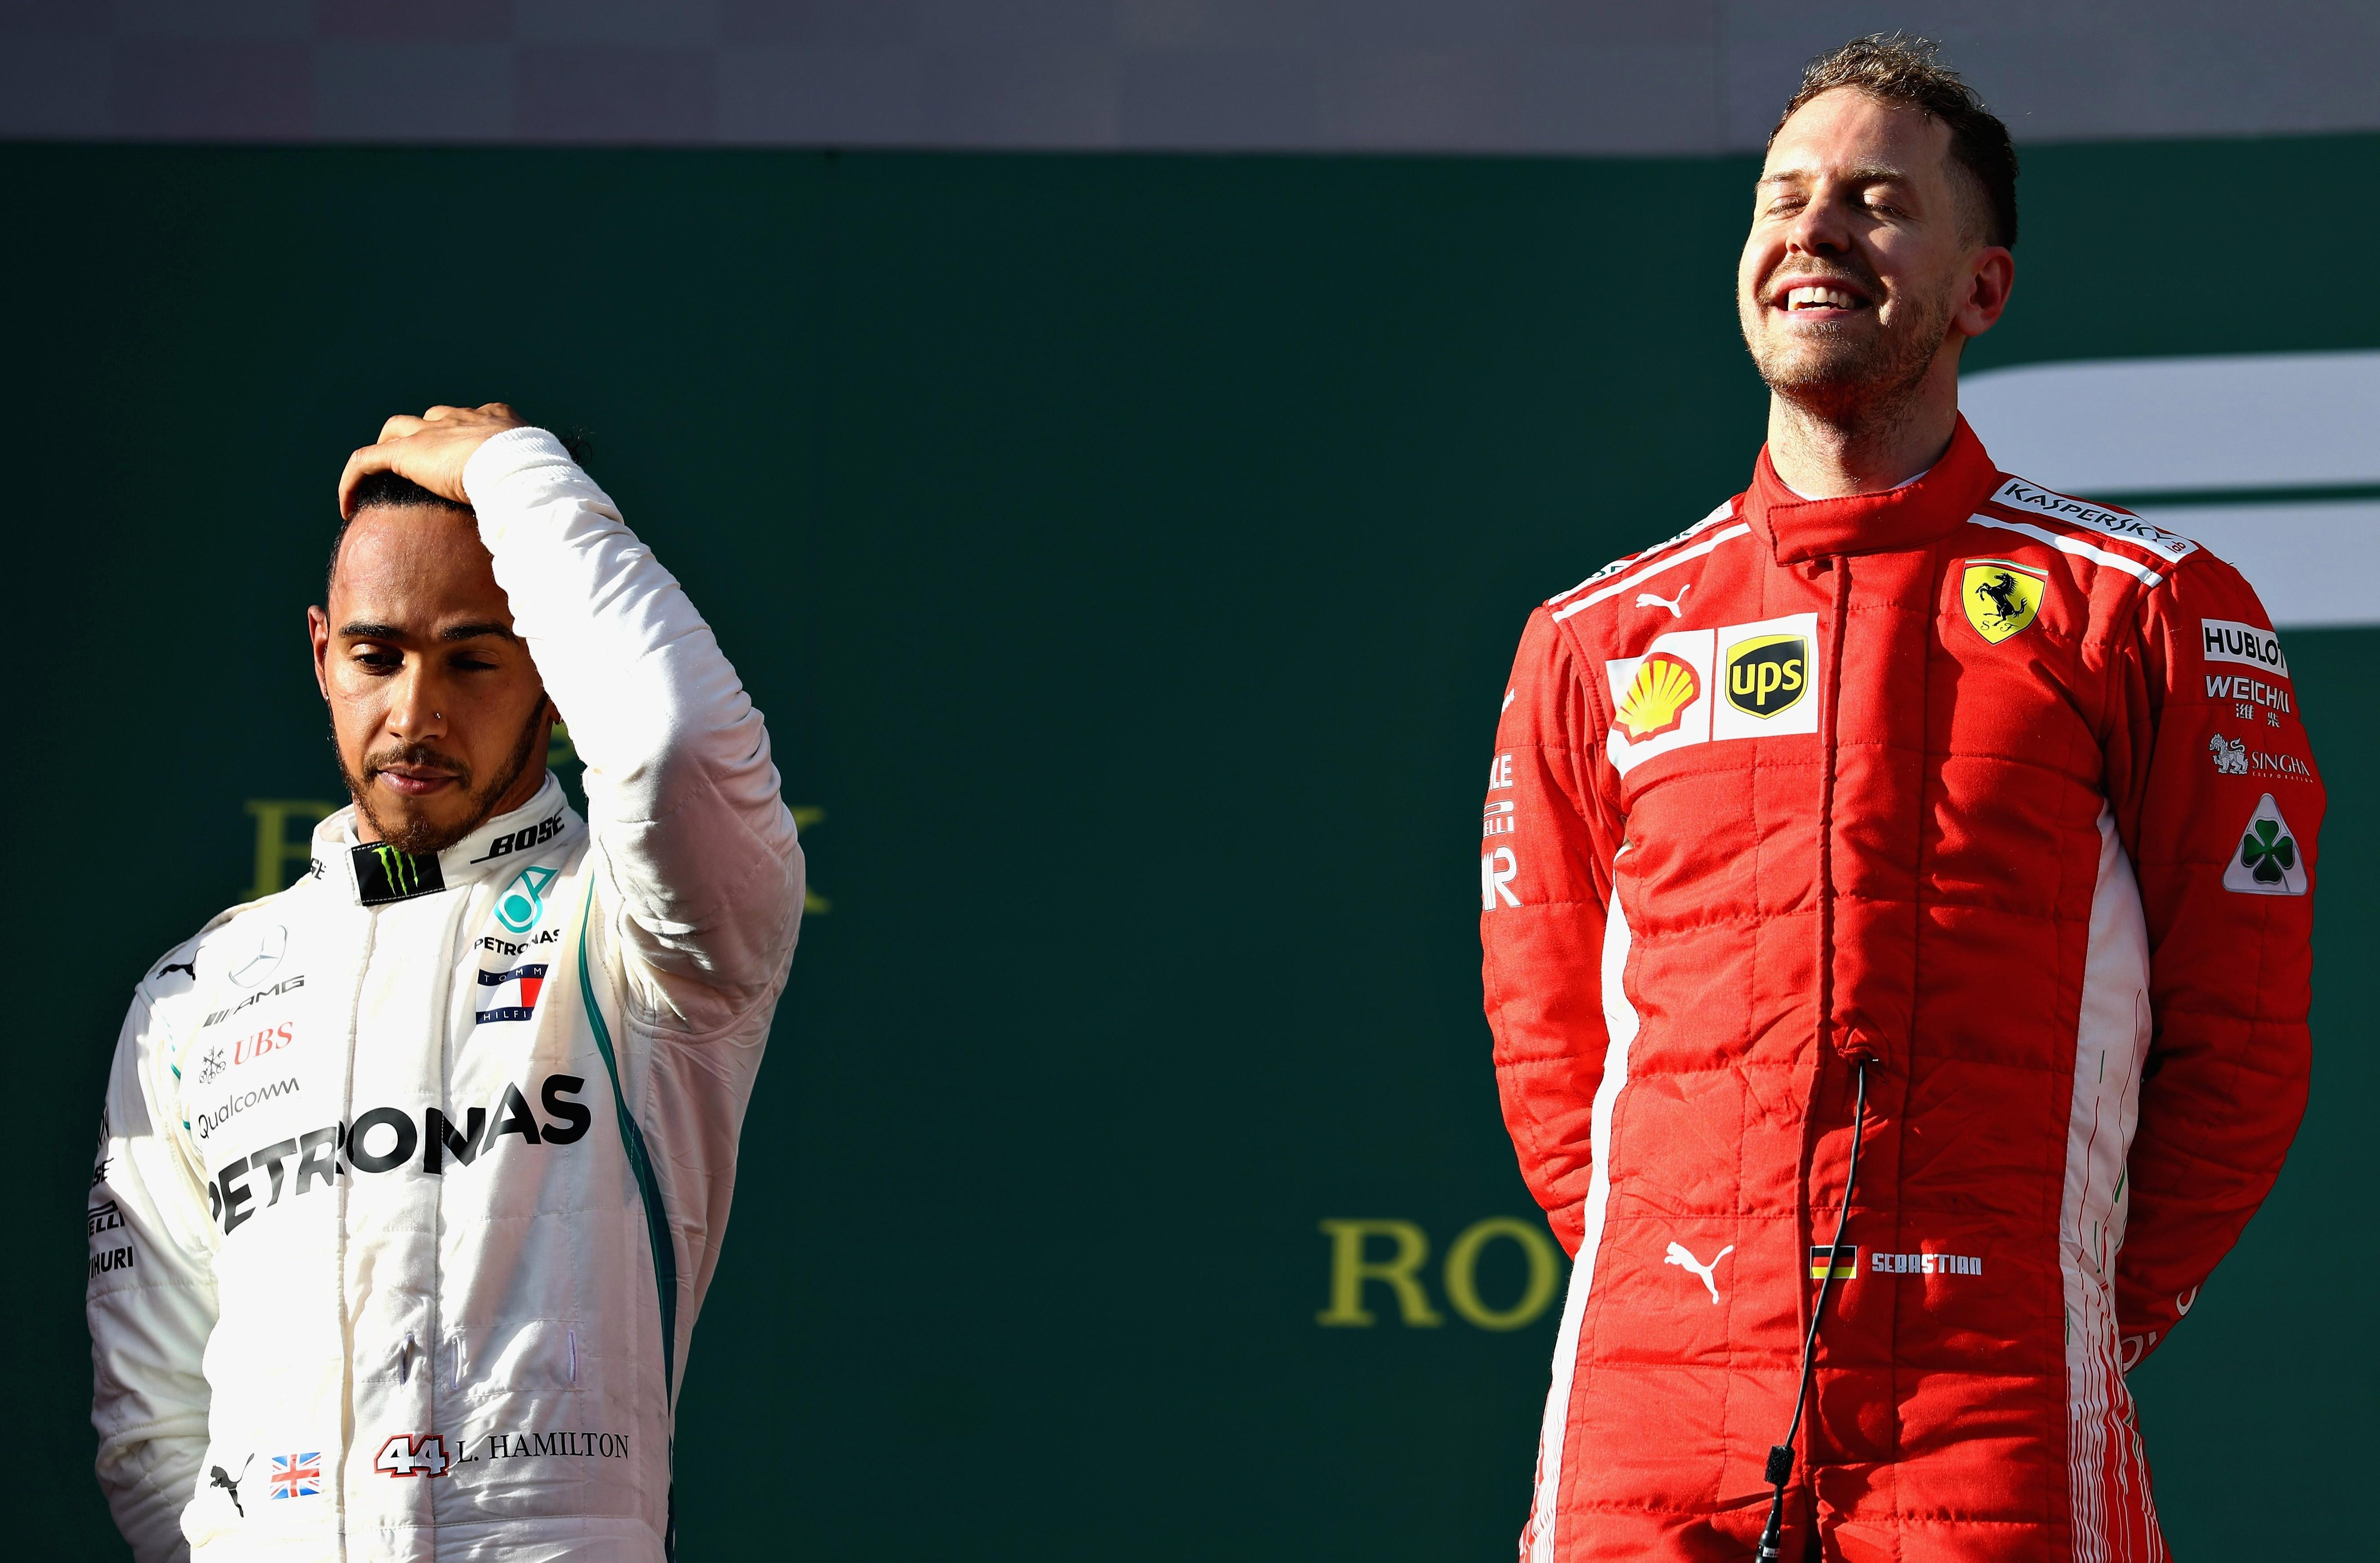 Lewis Hamilton is clearly disappointed at finishing behind rival Sebastian Vettel